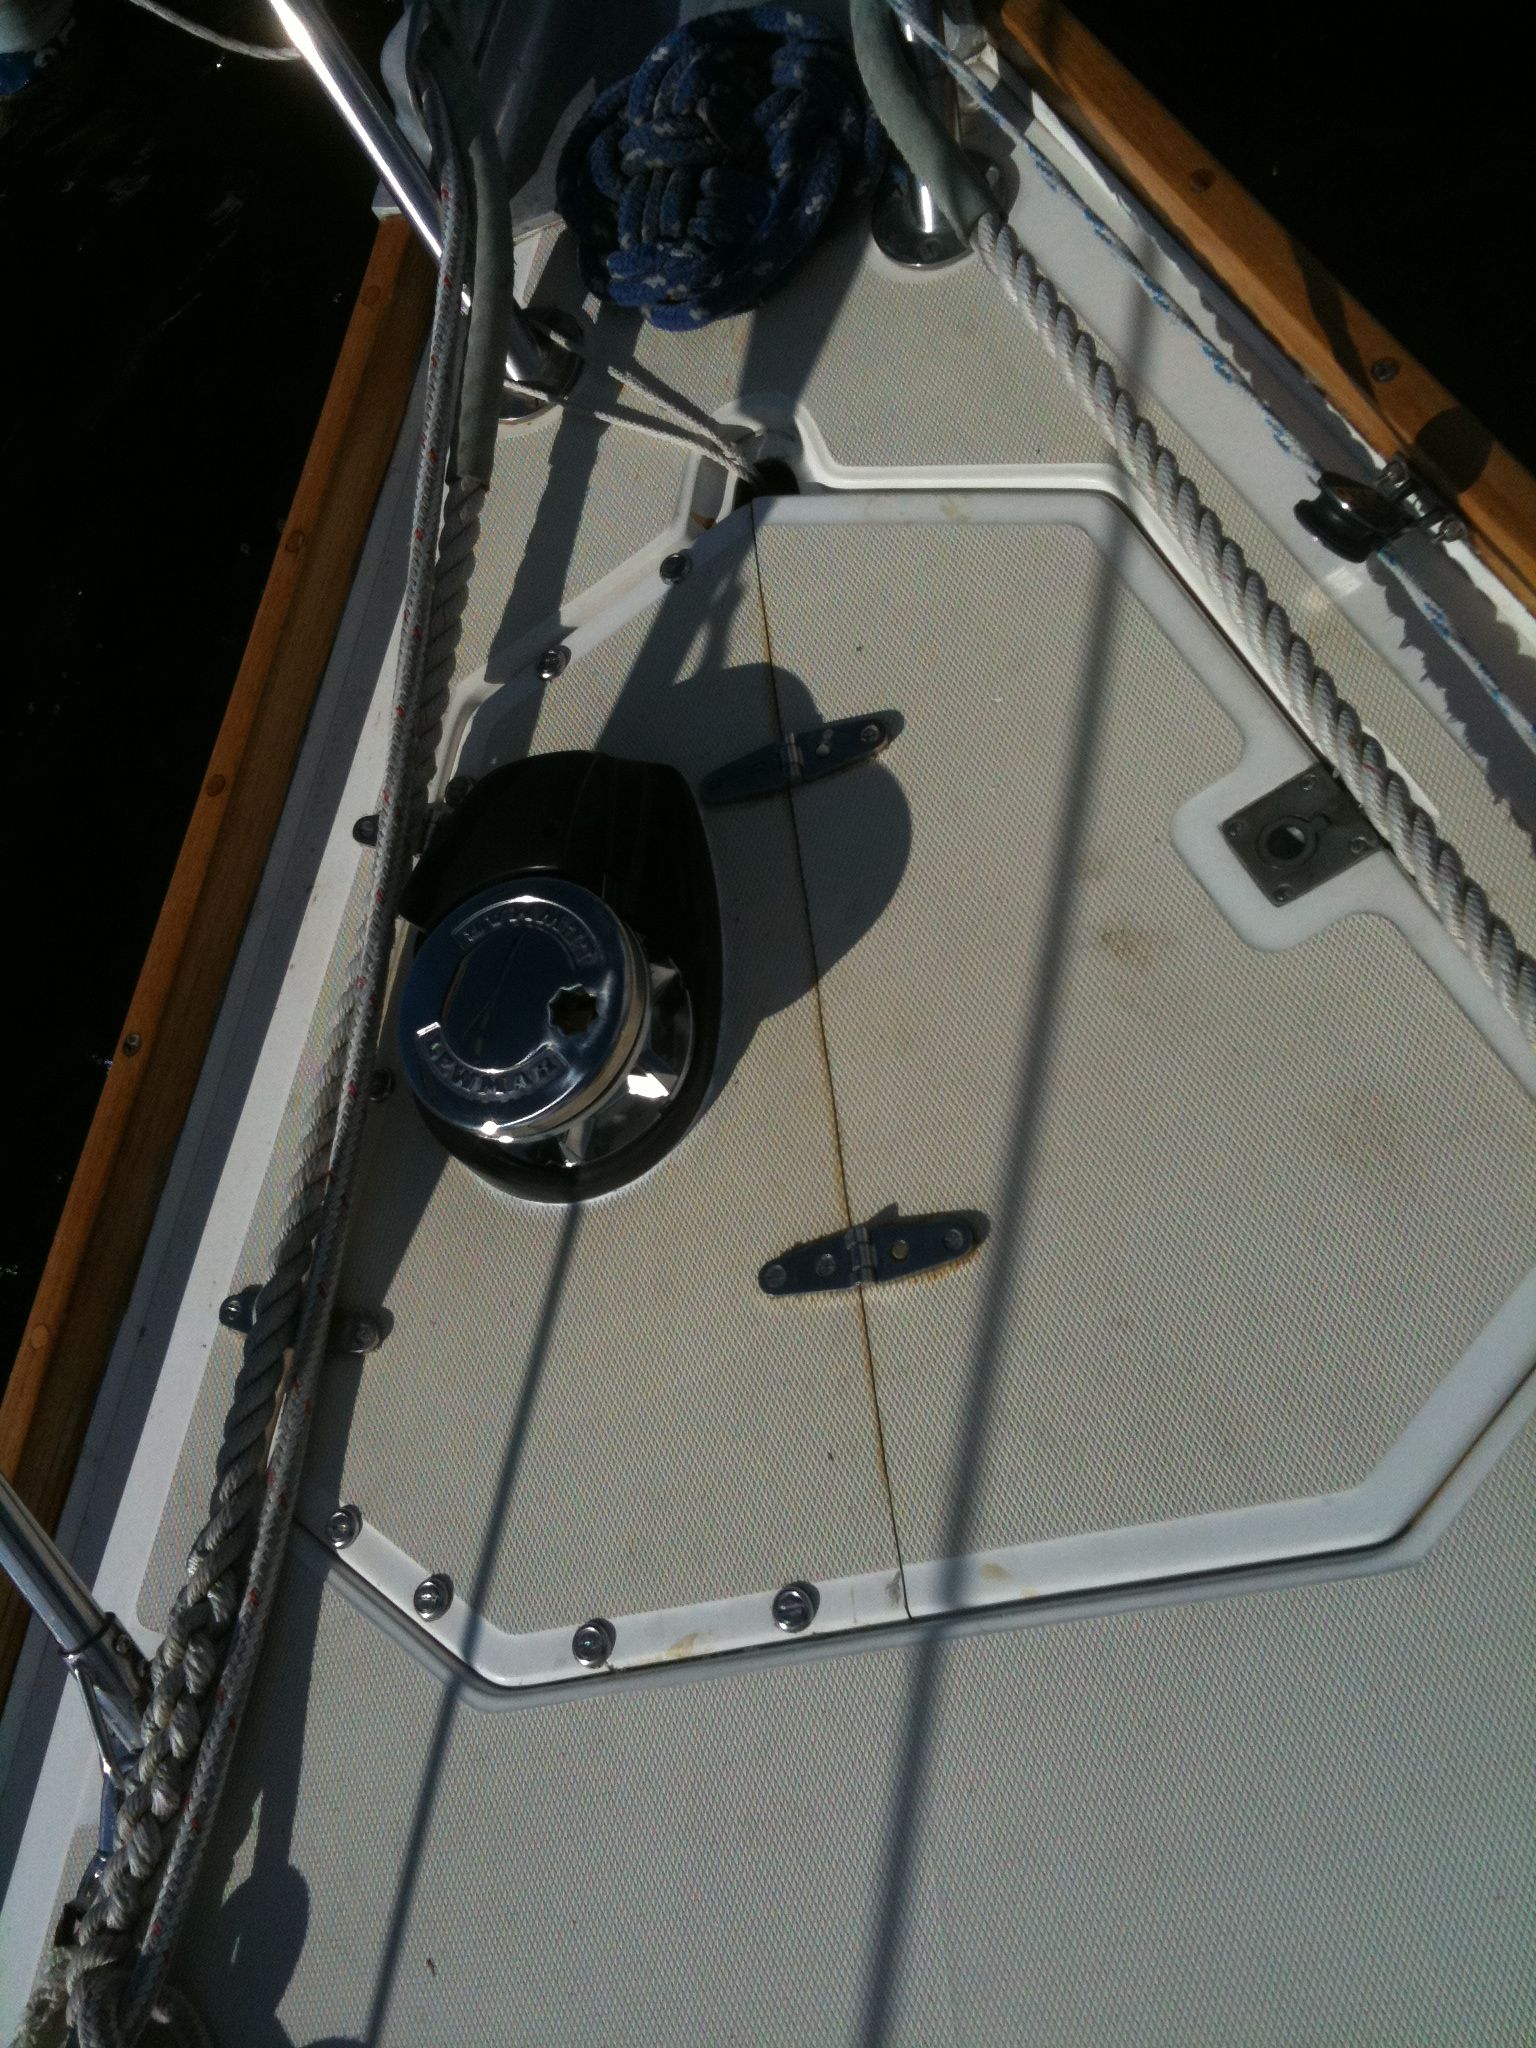 Windlass installed...Ignore the dirt and stains